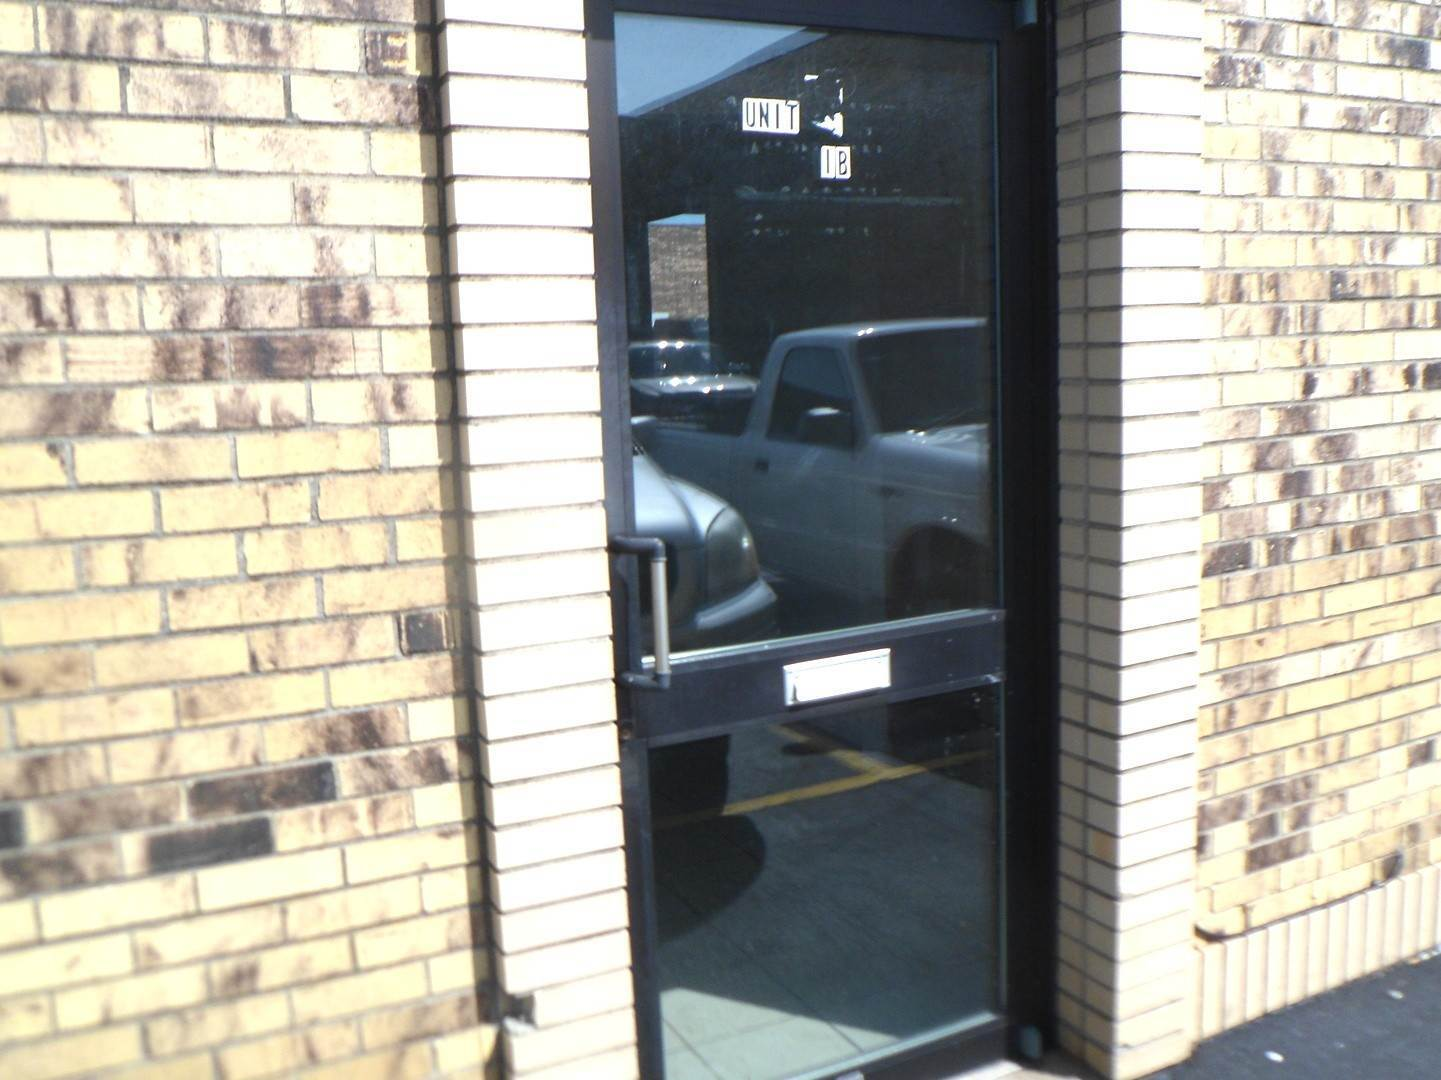 Commercial for Sale at 5451-5535 W 110th Street Oak Lawn, Illinois 60453 United States